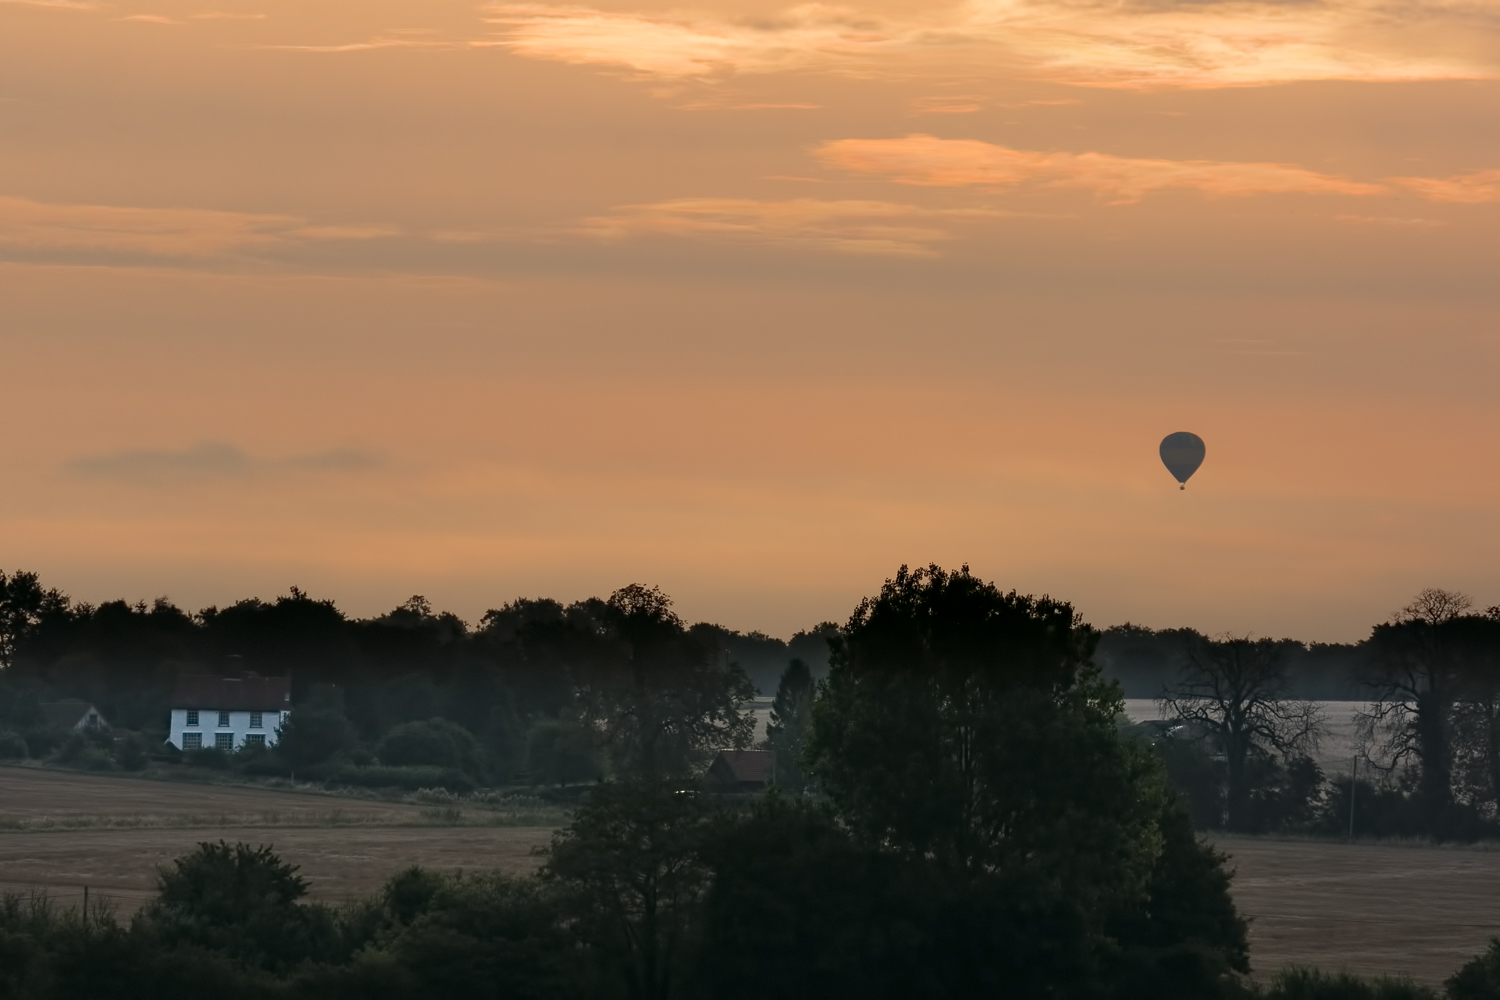 Ballooning Over Dunmow